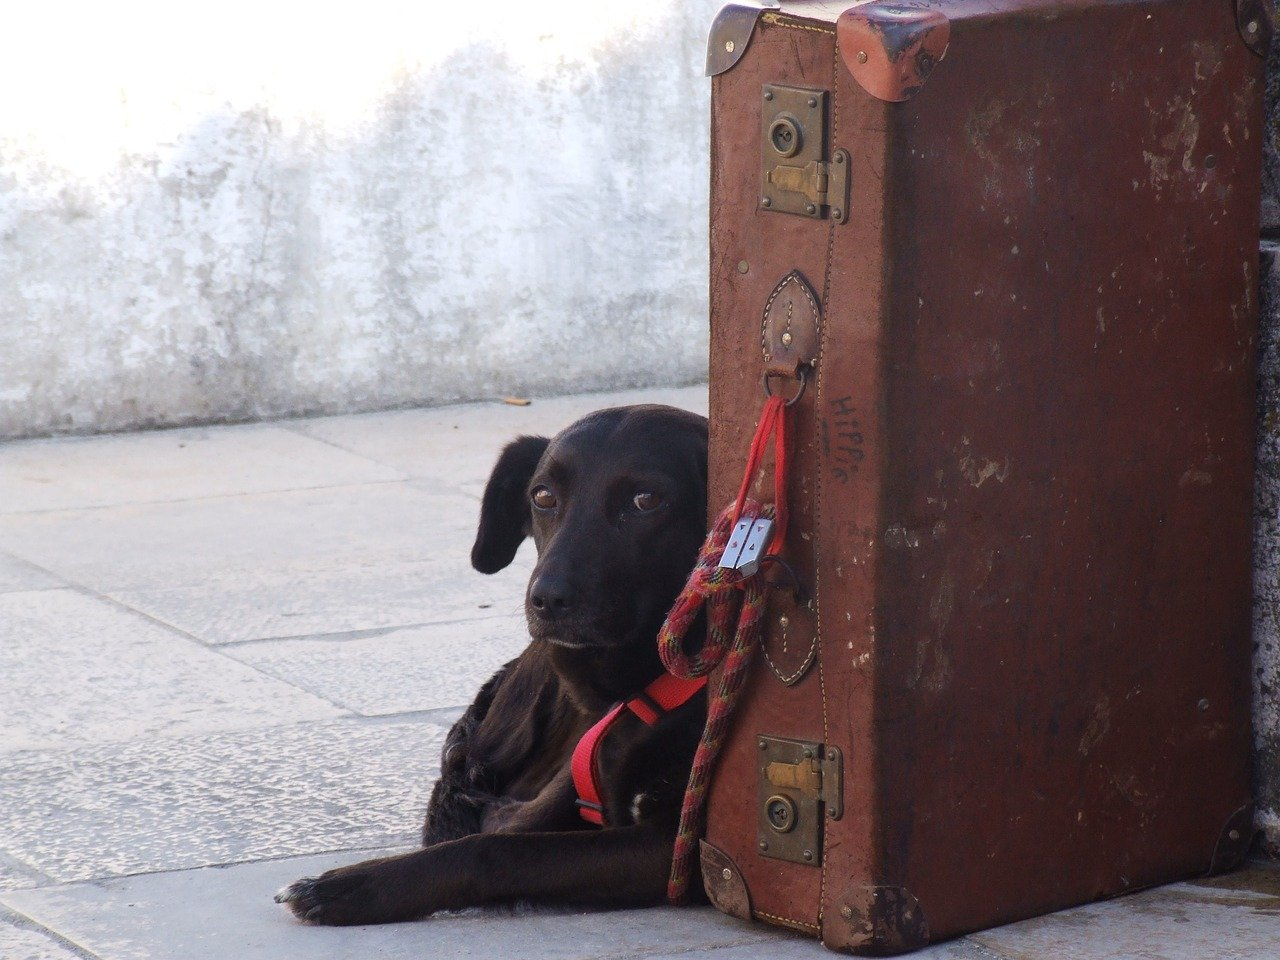 Flying Your Dog in Cargo - Things You Need to Know